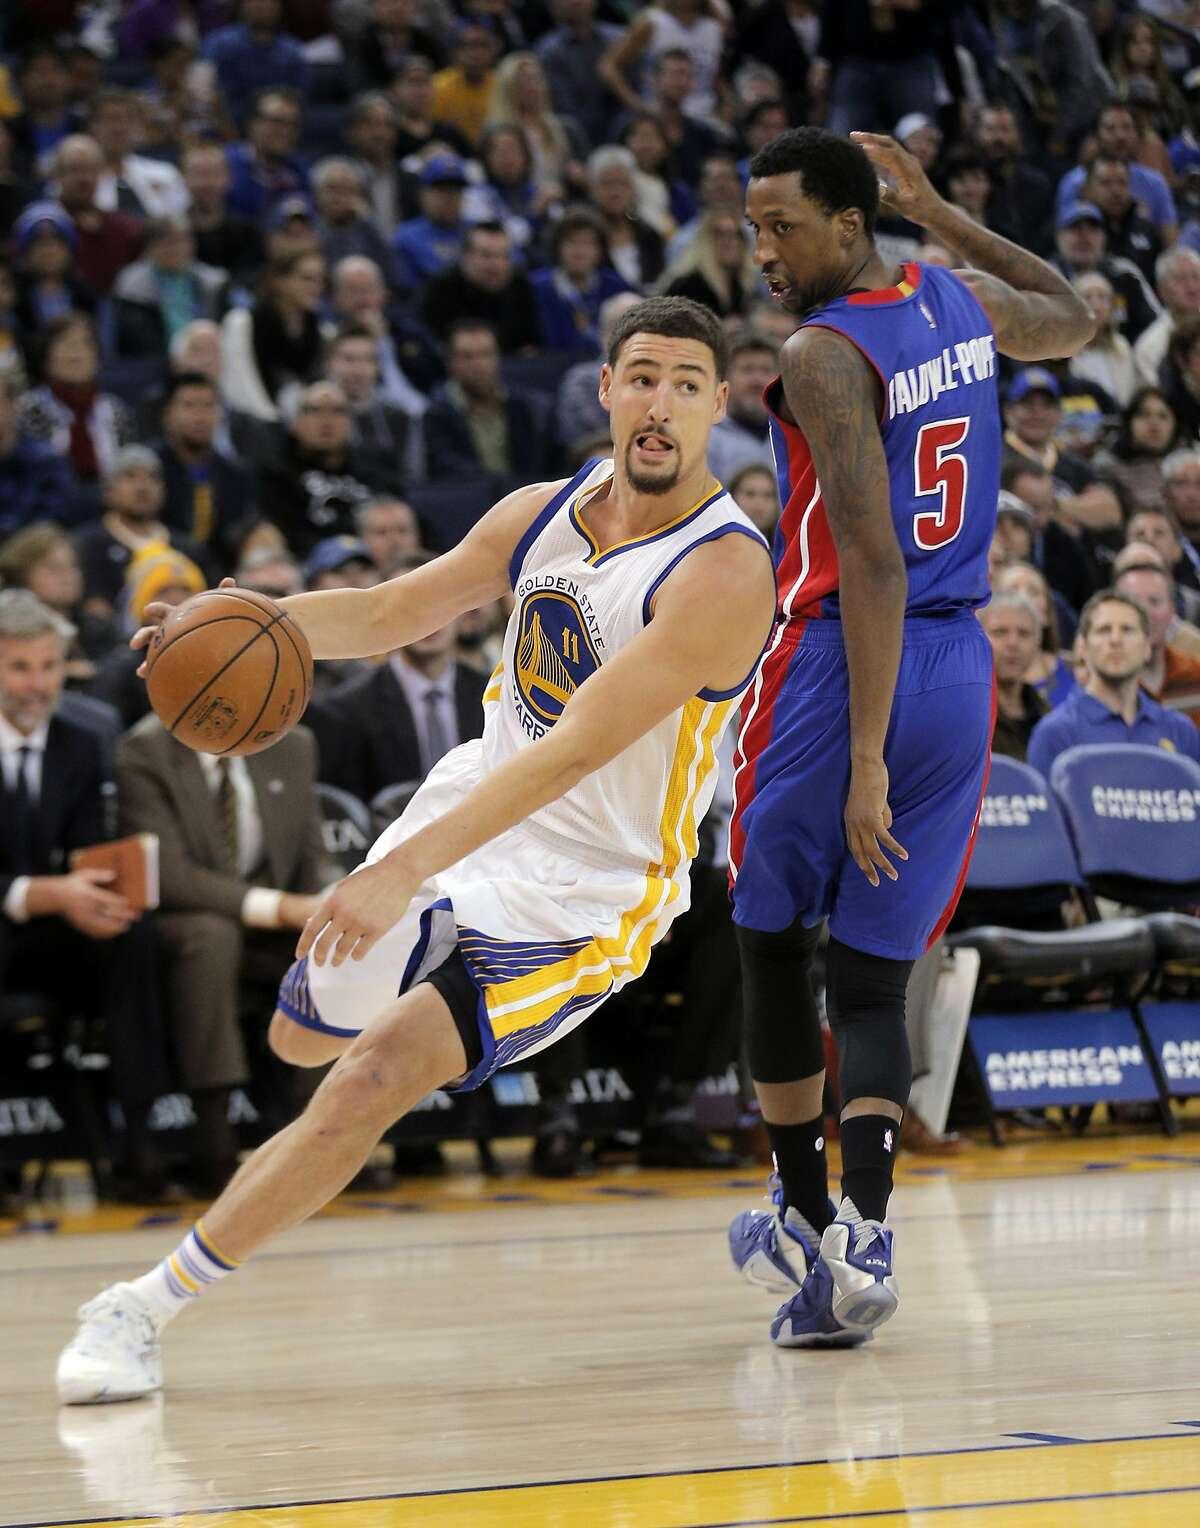 Klay Thompson (11) drives to the basket in the first half as the Golden State Warriors played the Detroit Pistons at Oracle Arena in Oakland, Calif., on Monday, November 9, 2015.